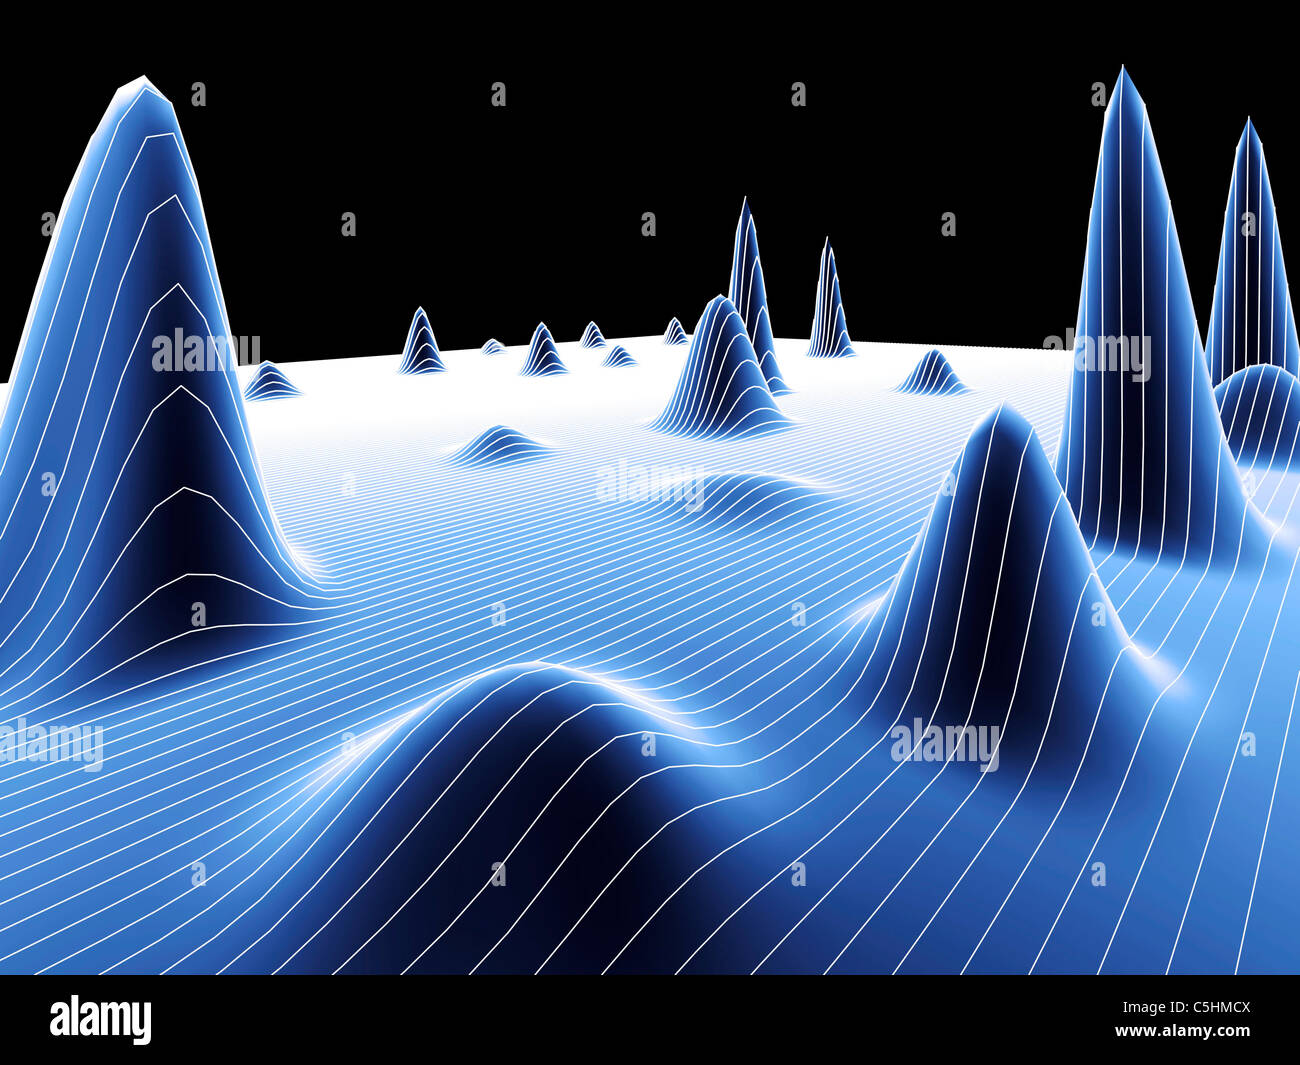 3D surface graph - Stock Image